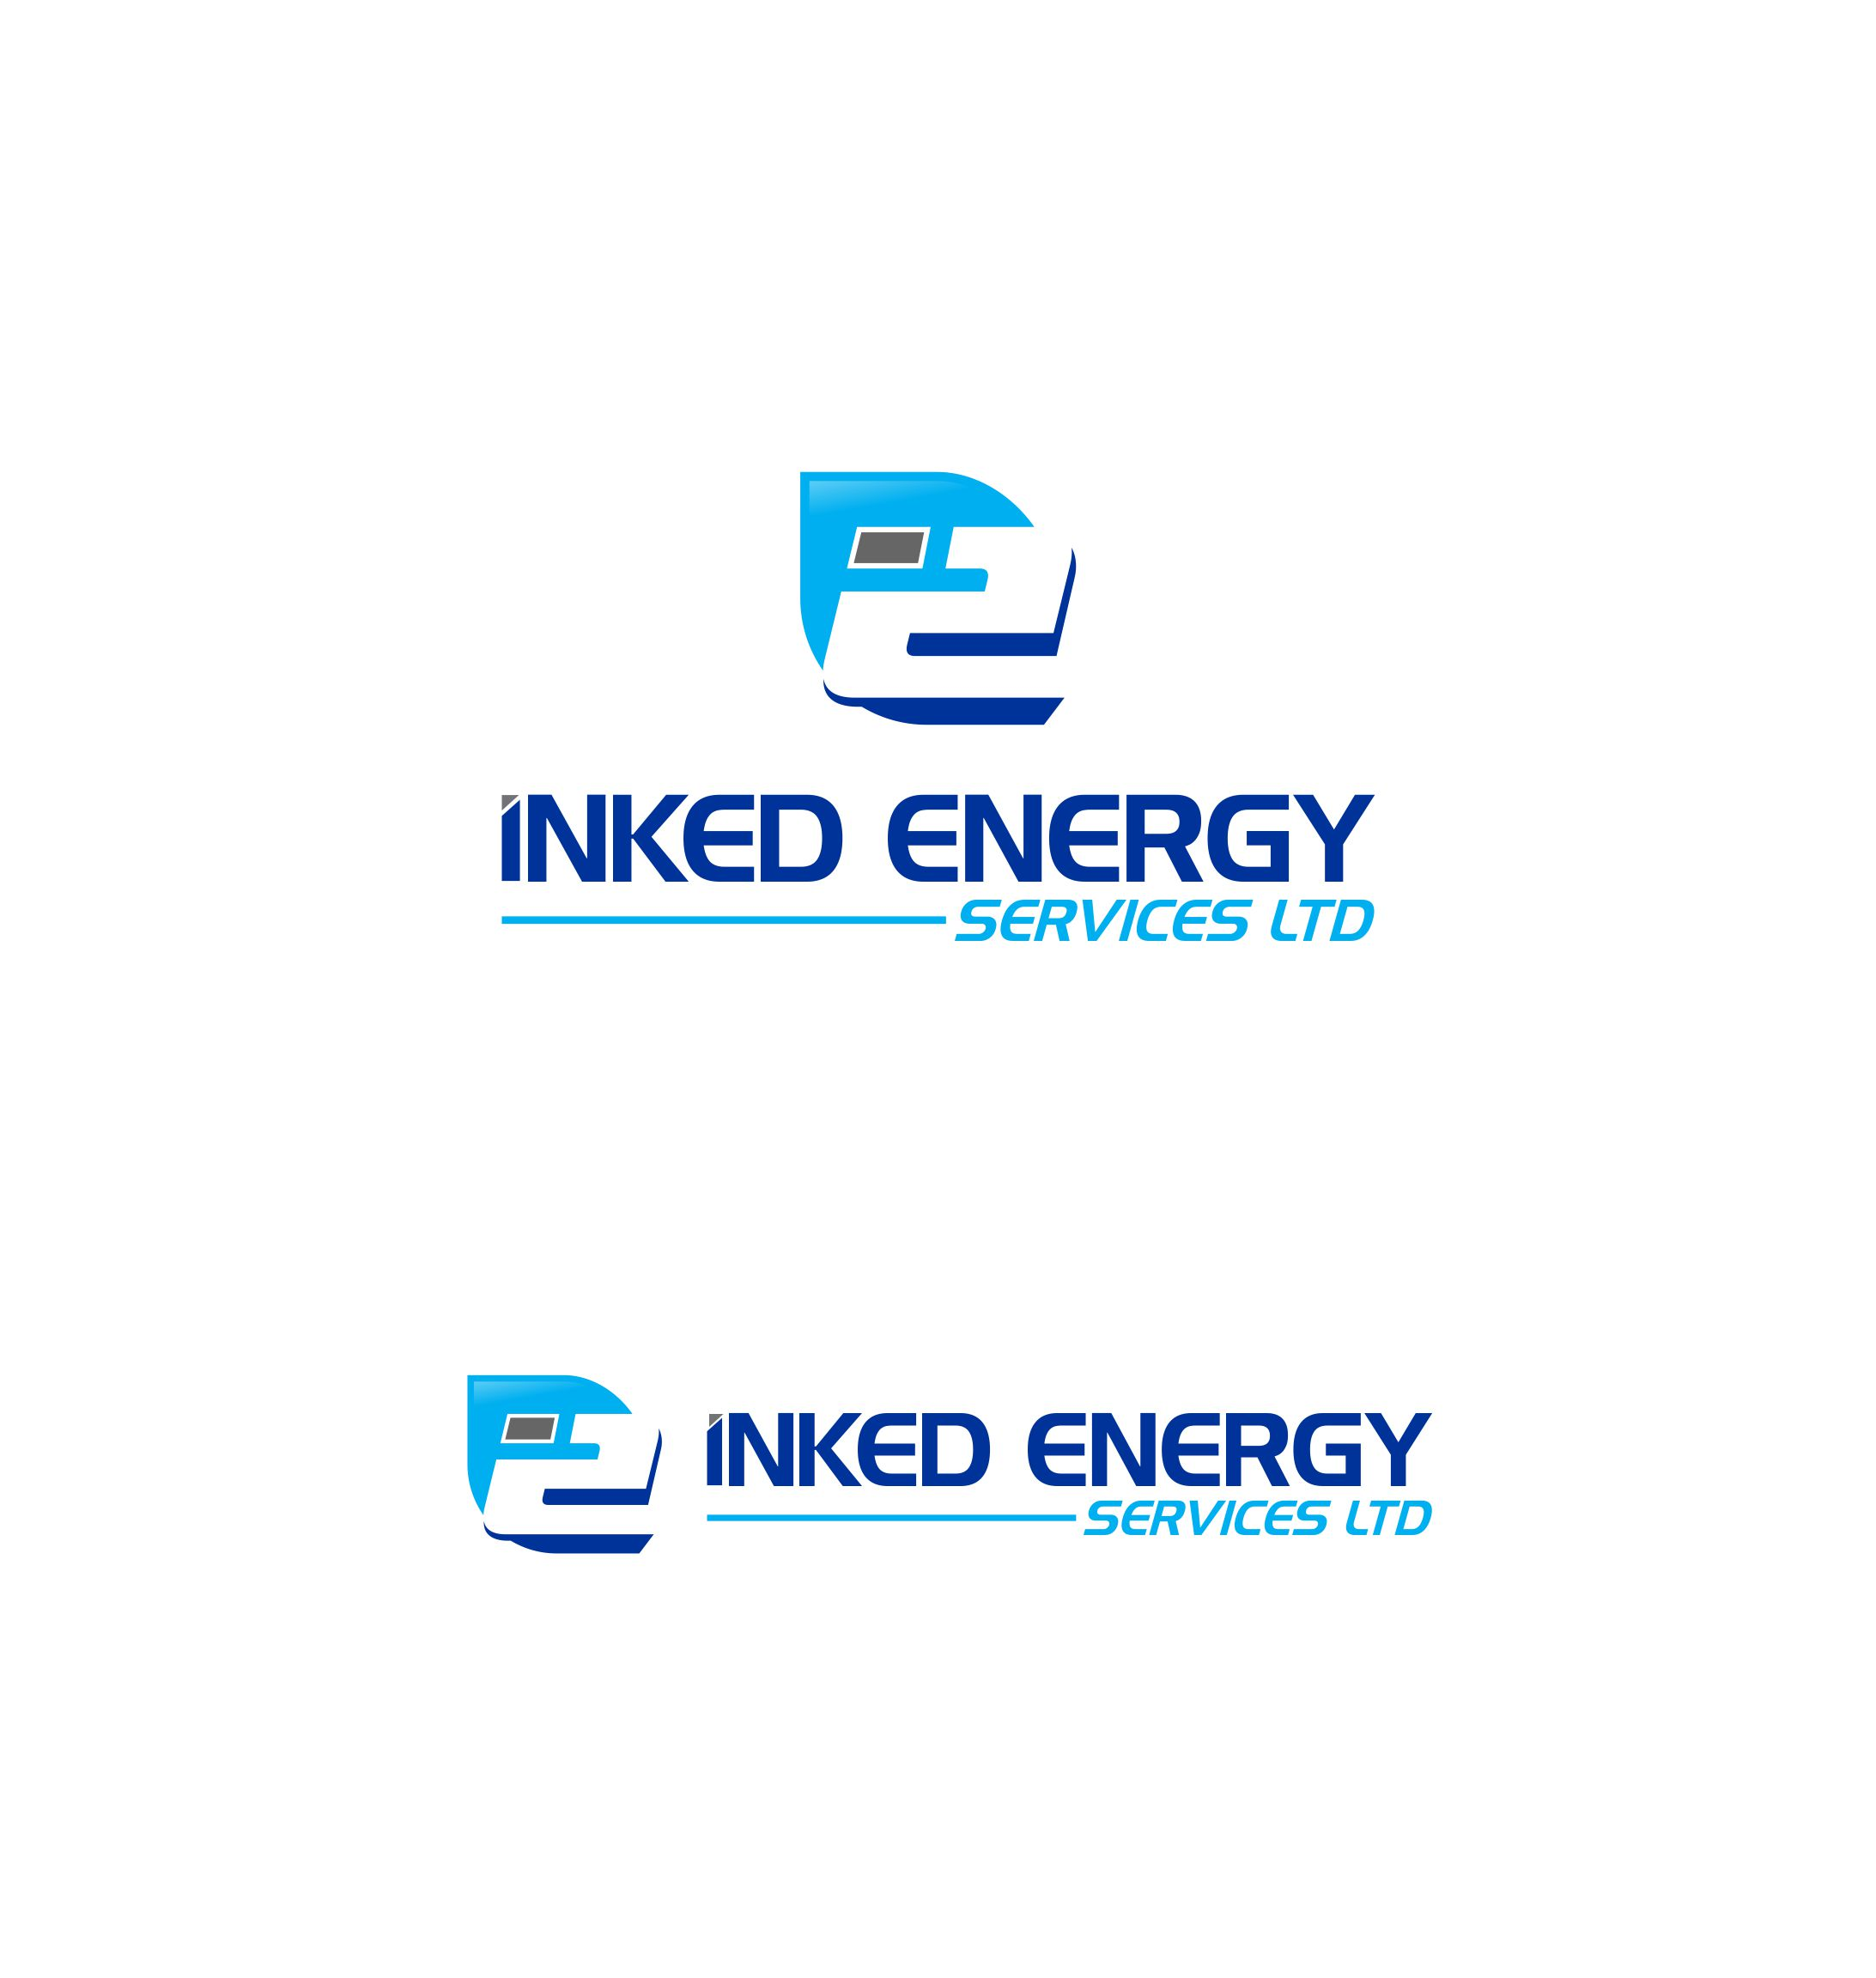 Logo Design by Raymond Garcia - Entry No. 143 in the Logo Design Contest Creative Logo Design for INKED ENERGY SERVICES LTD.